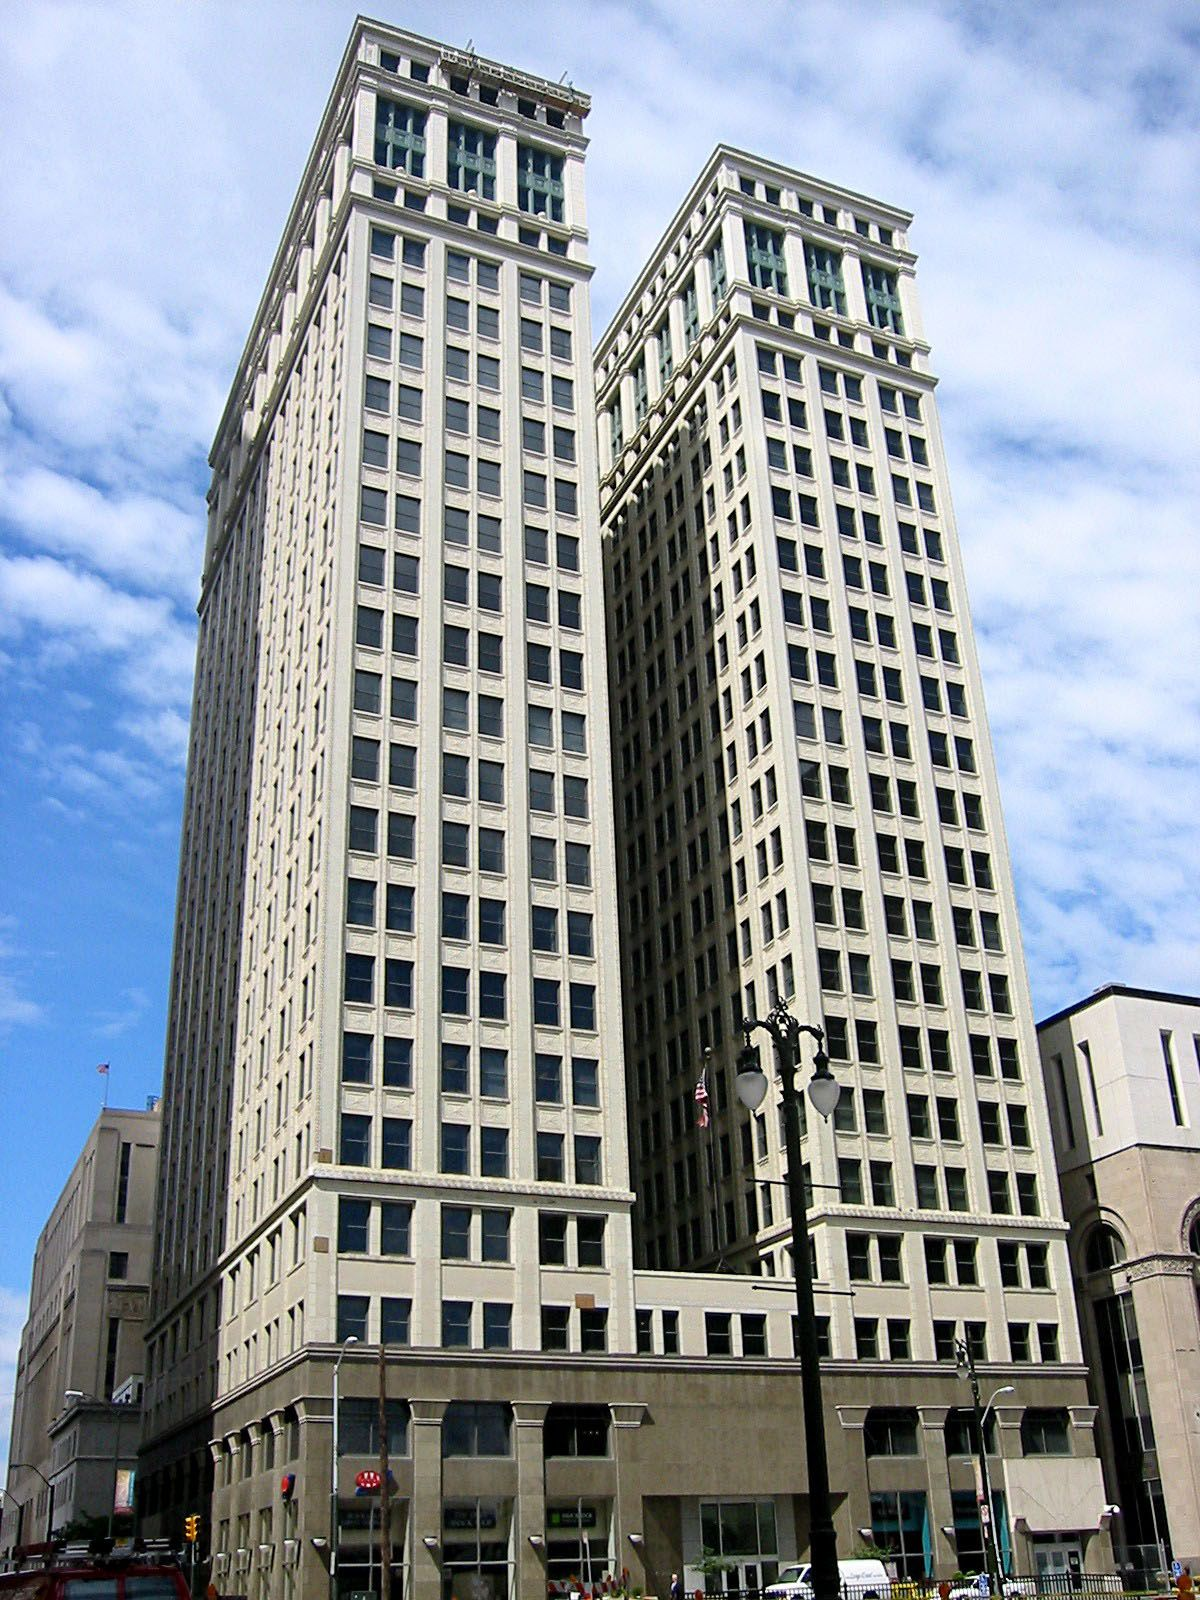 The Dime Building Is A Skyscraper Office Building Located In